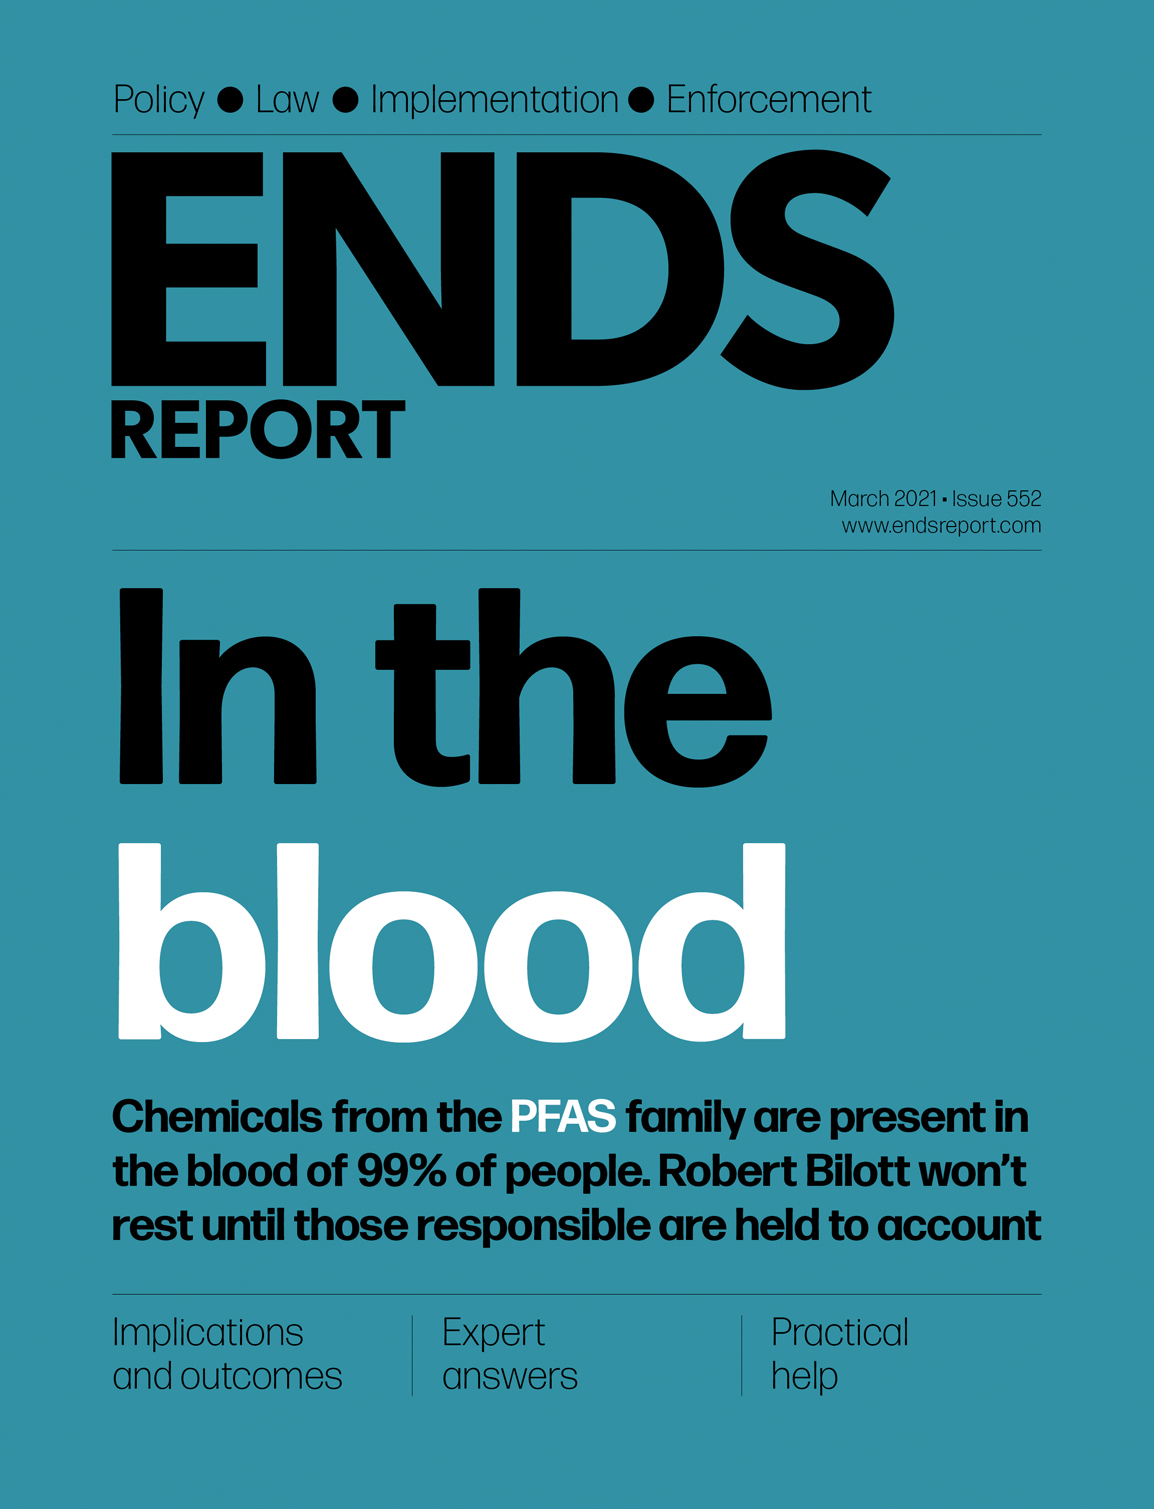 ENDS Report issue 552, March 2021